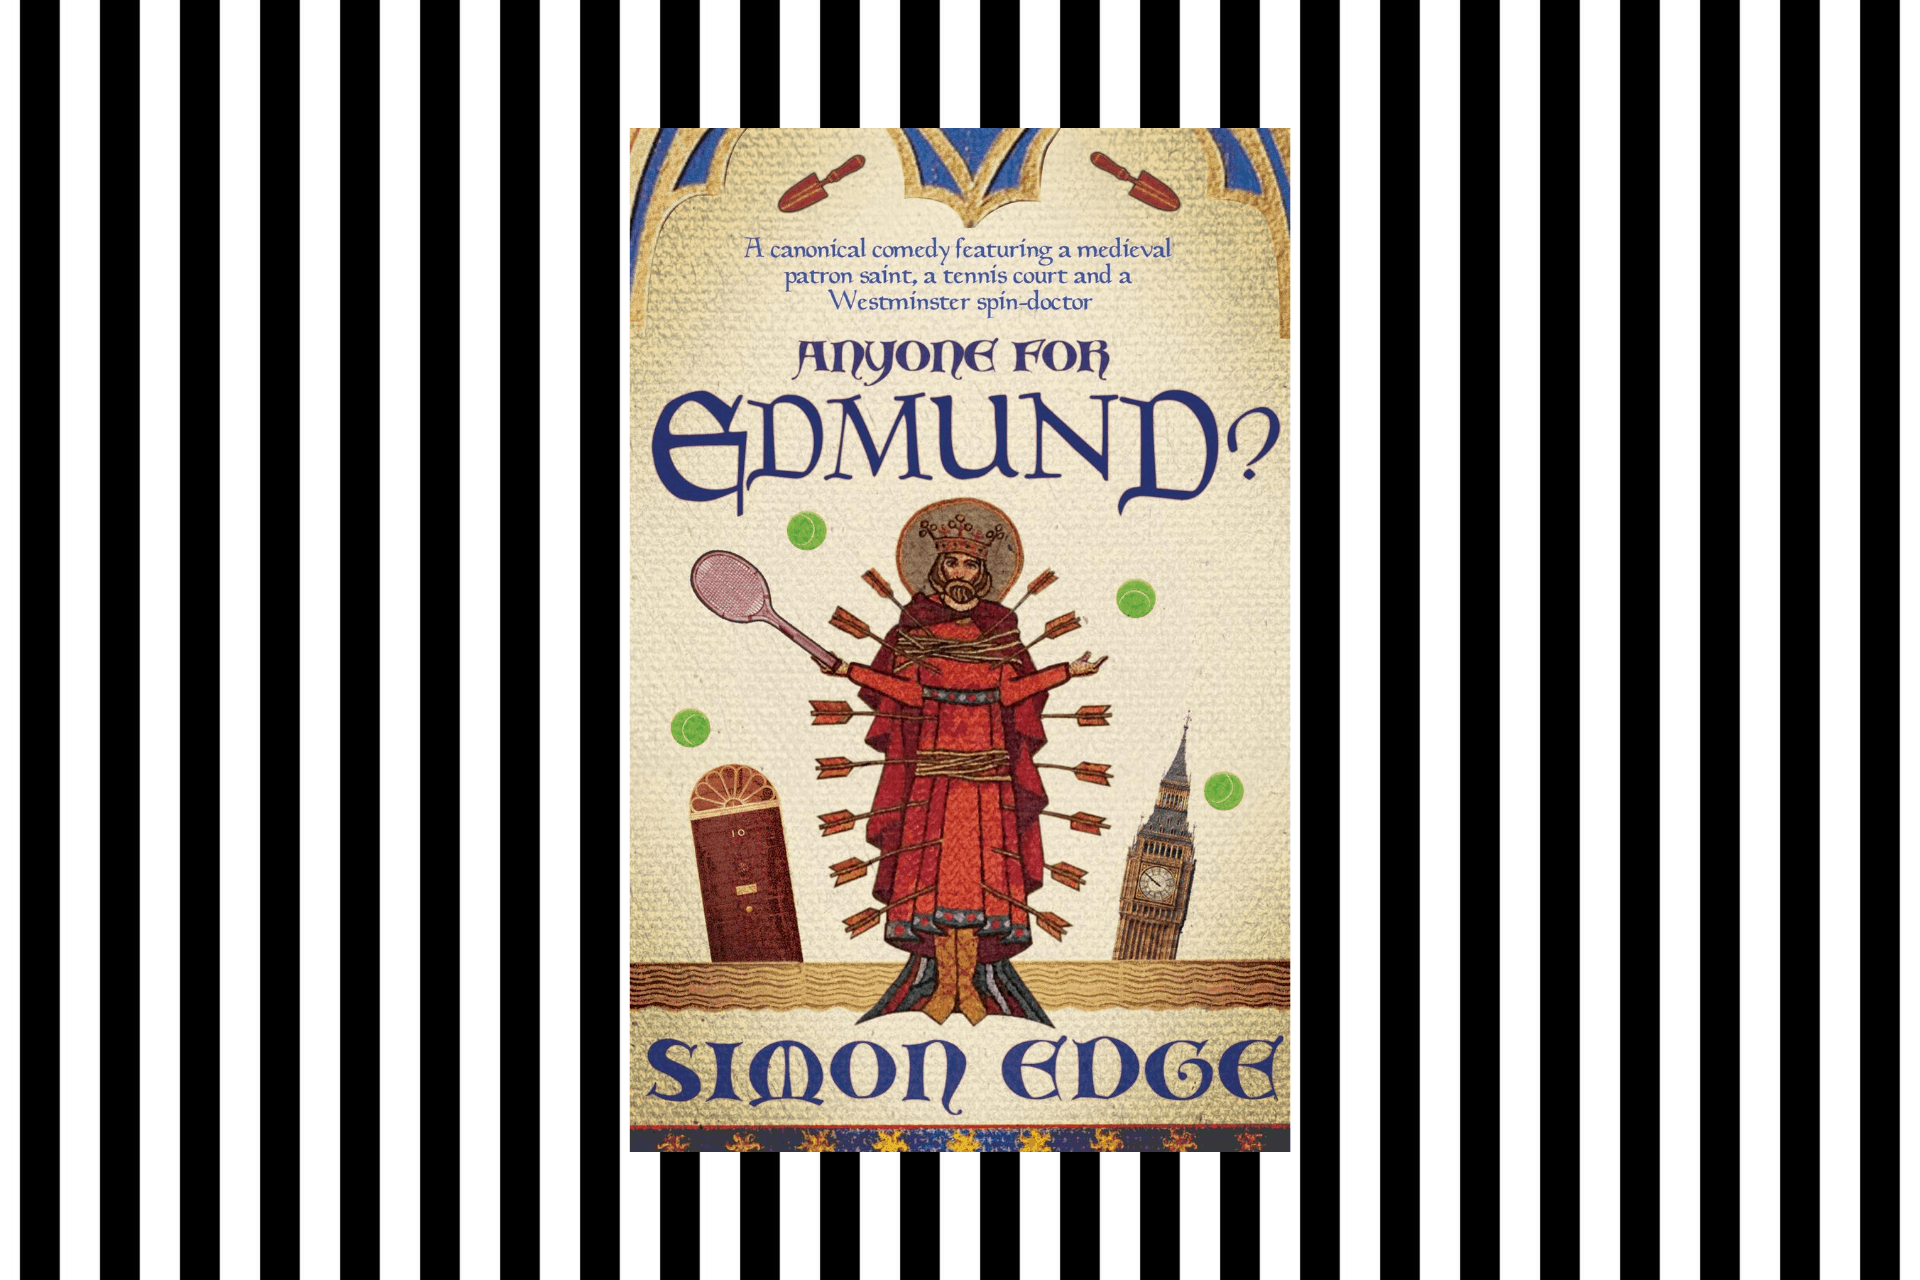 The cover of Anyone for Edmund? by Simon Edge